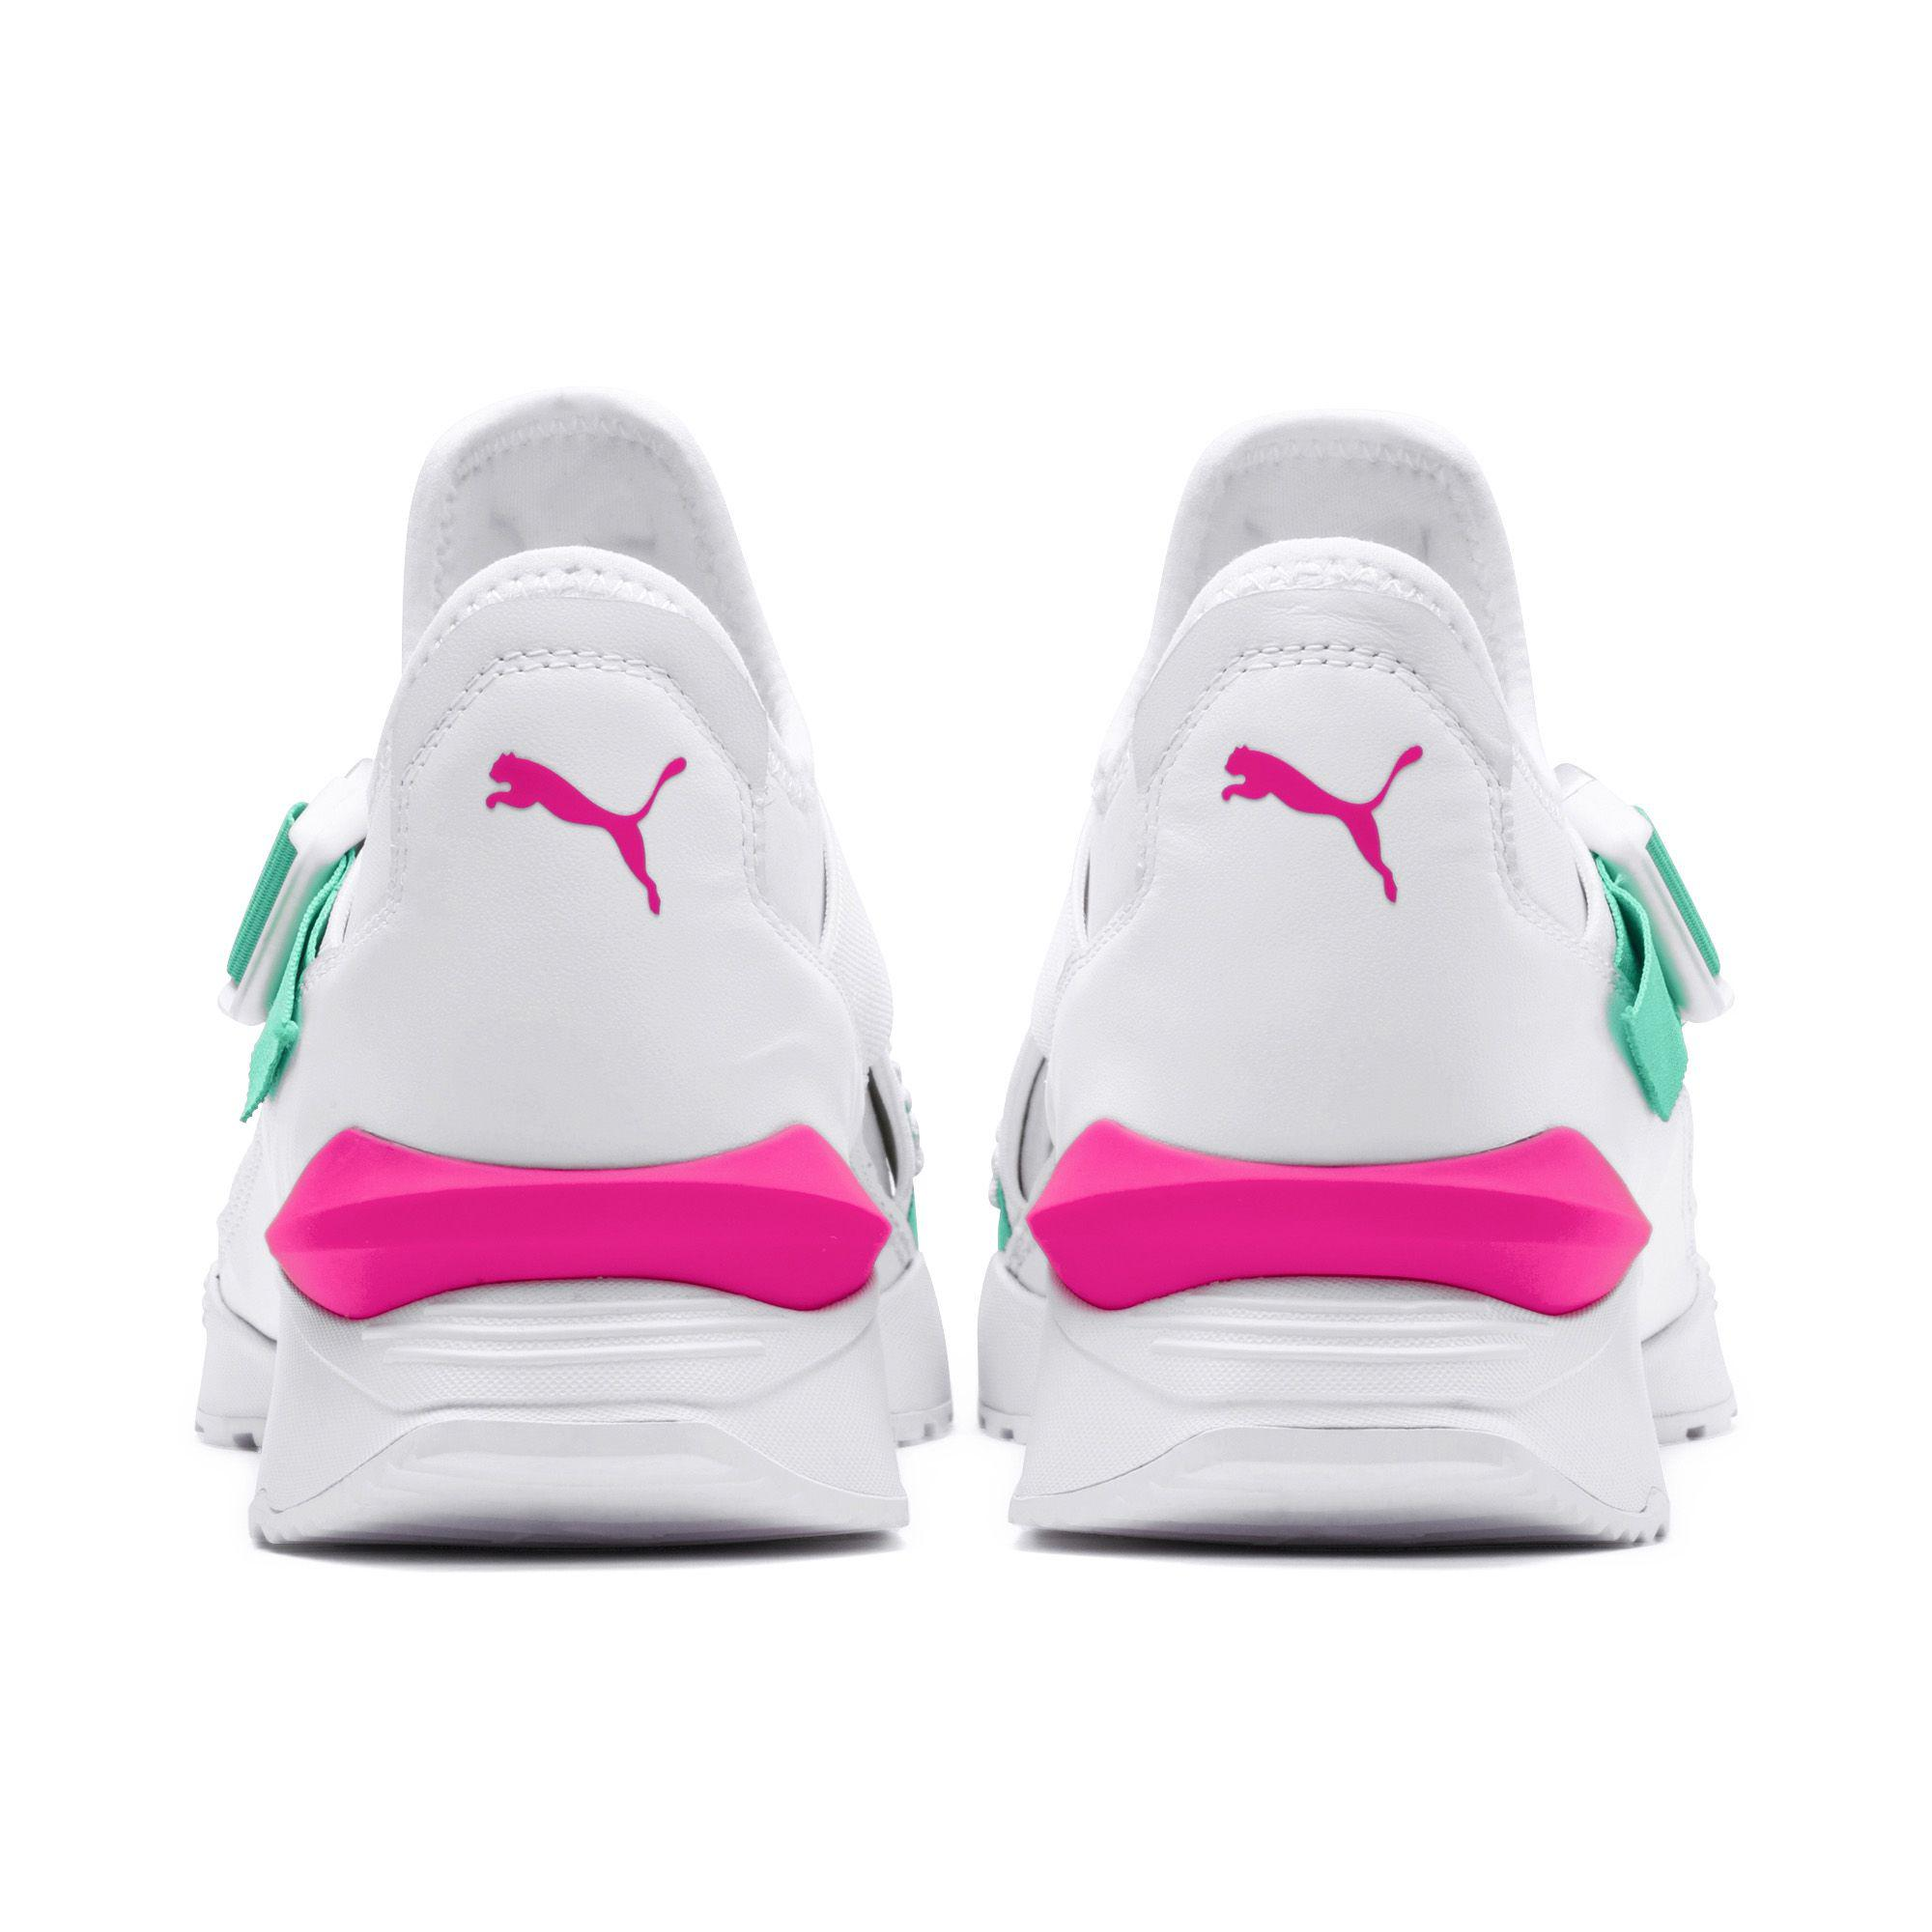 3caf0d820b1e Lyst - PUMA Muse Eos Street 1 Women s Sneakers in White - Save 31%